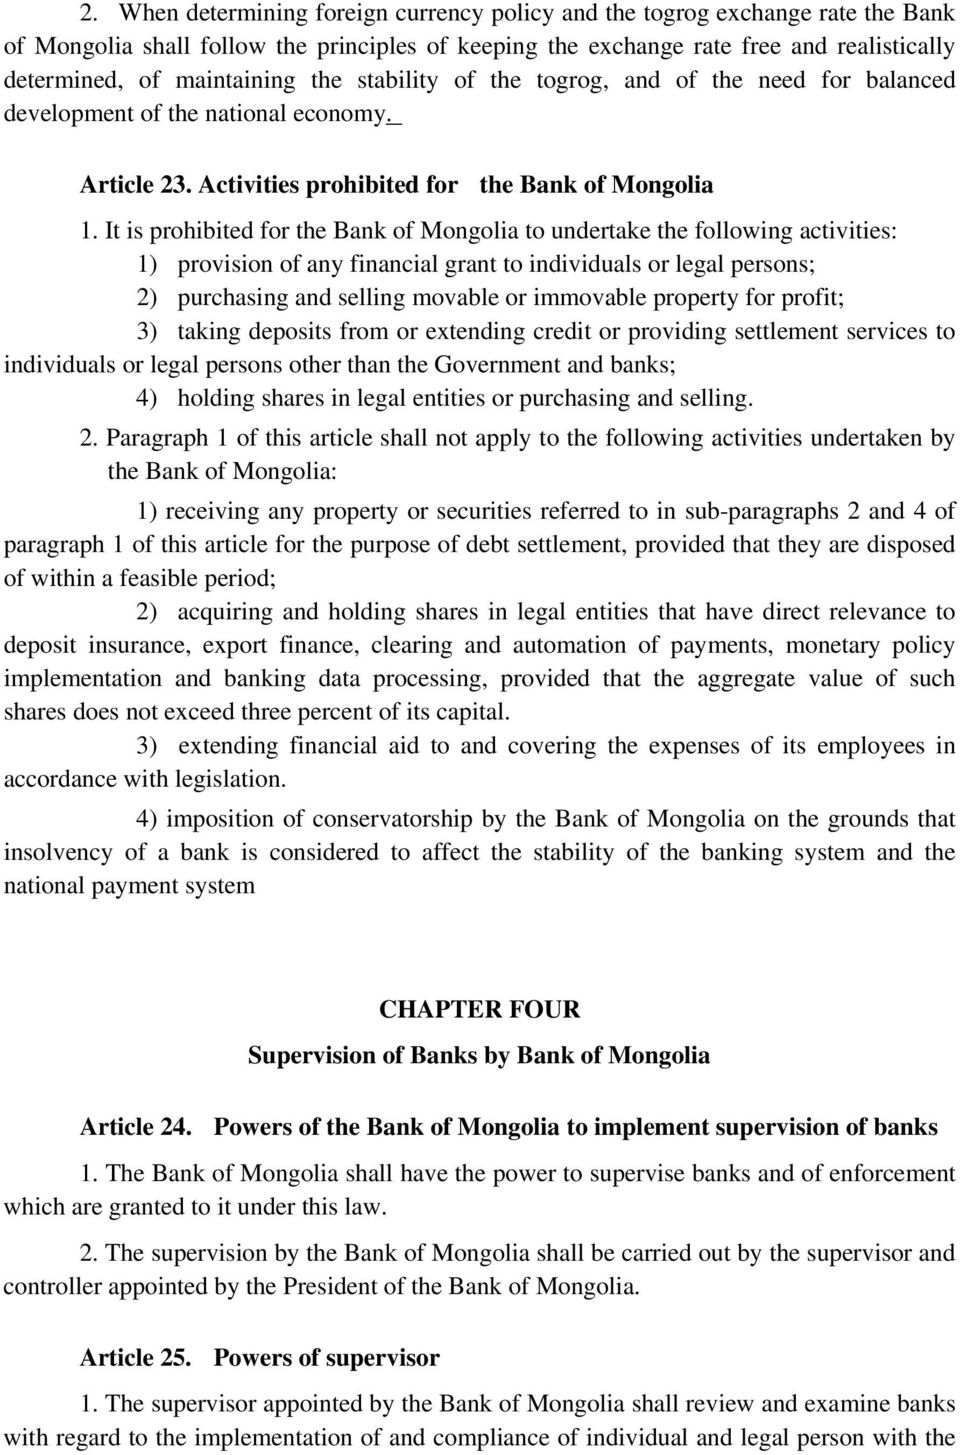 It is prohibited for the Bank of Mongolia to undertake the following activities: 1) provision of any financial grant to individuals or legal persons; 2) purchasing and selling movable or immovable